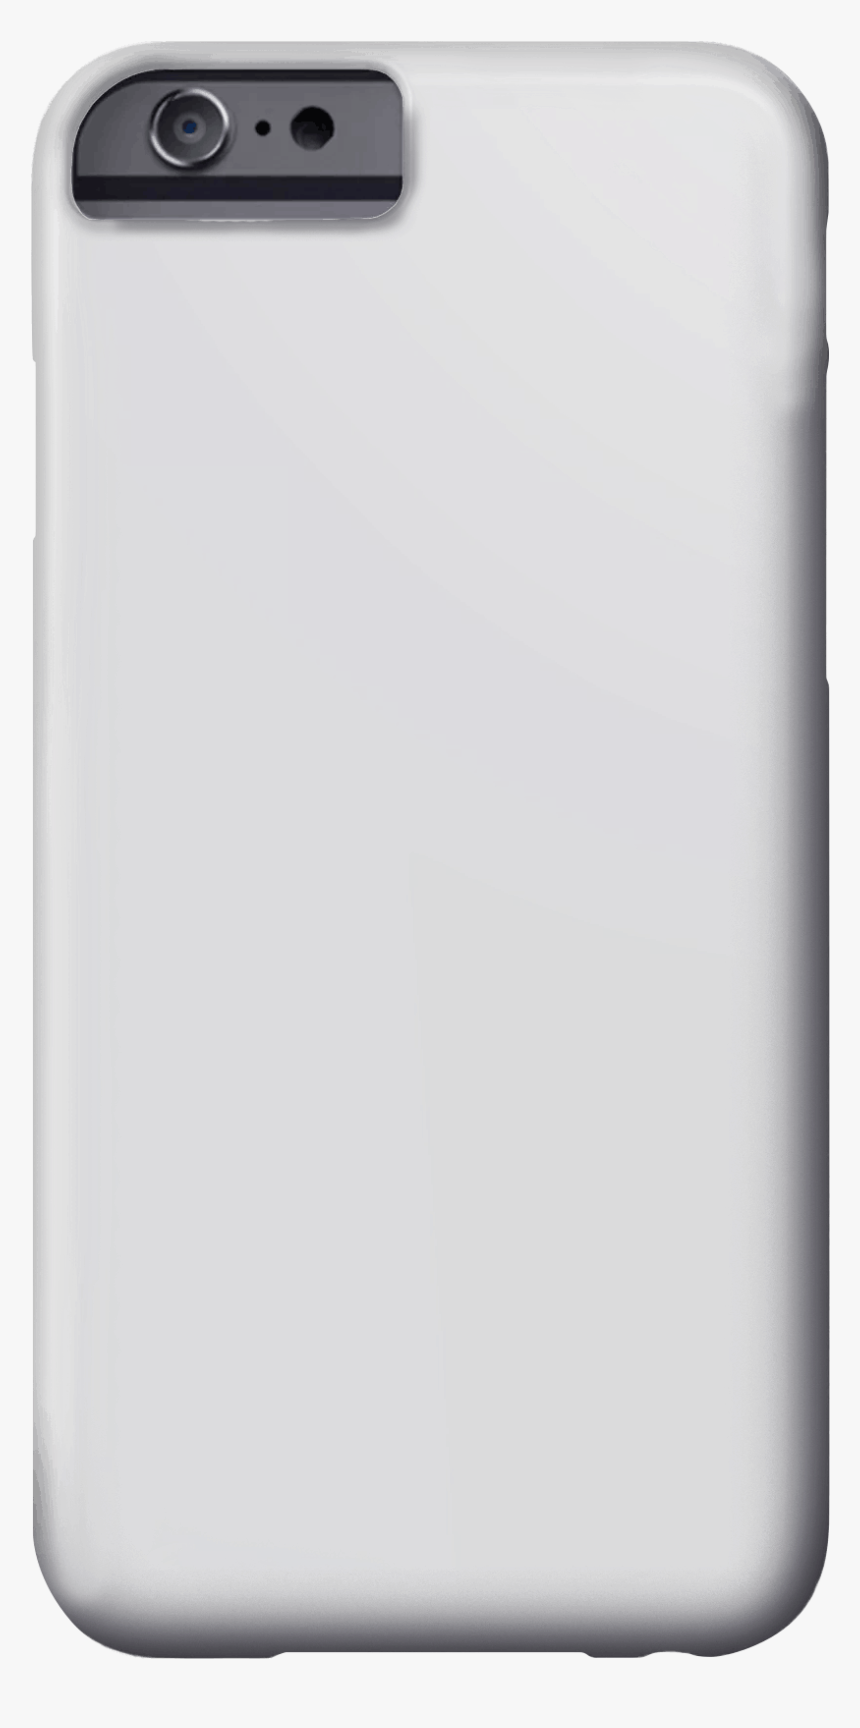 Phone Case Png - Phone Case Transparent Png, Png Download, Free Download